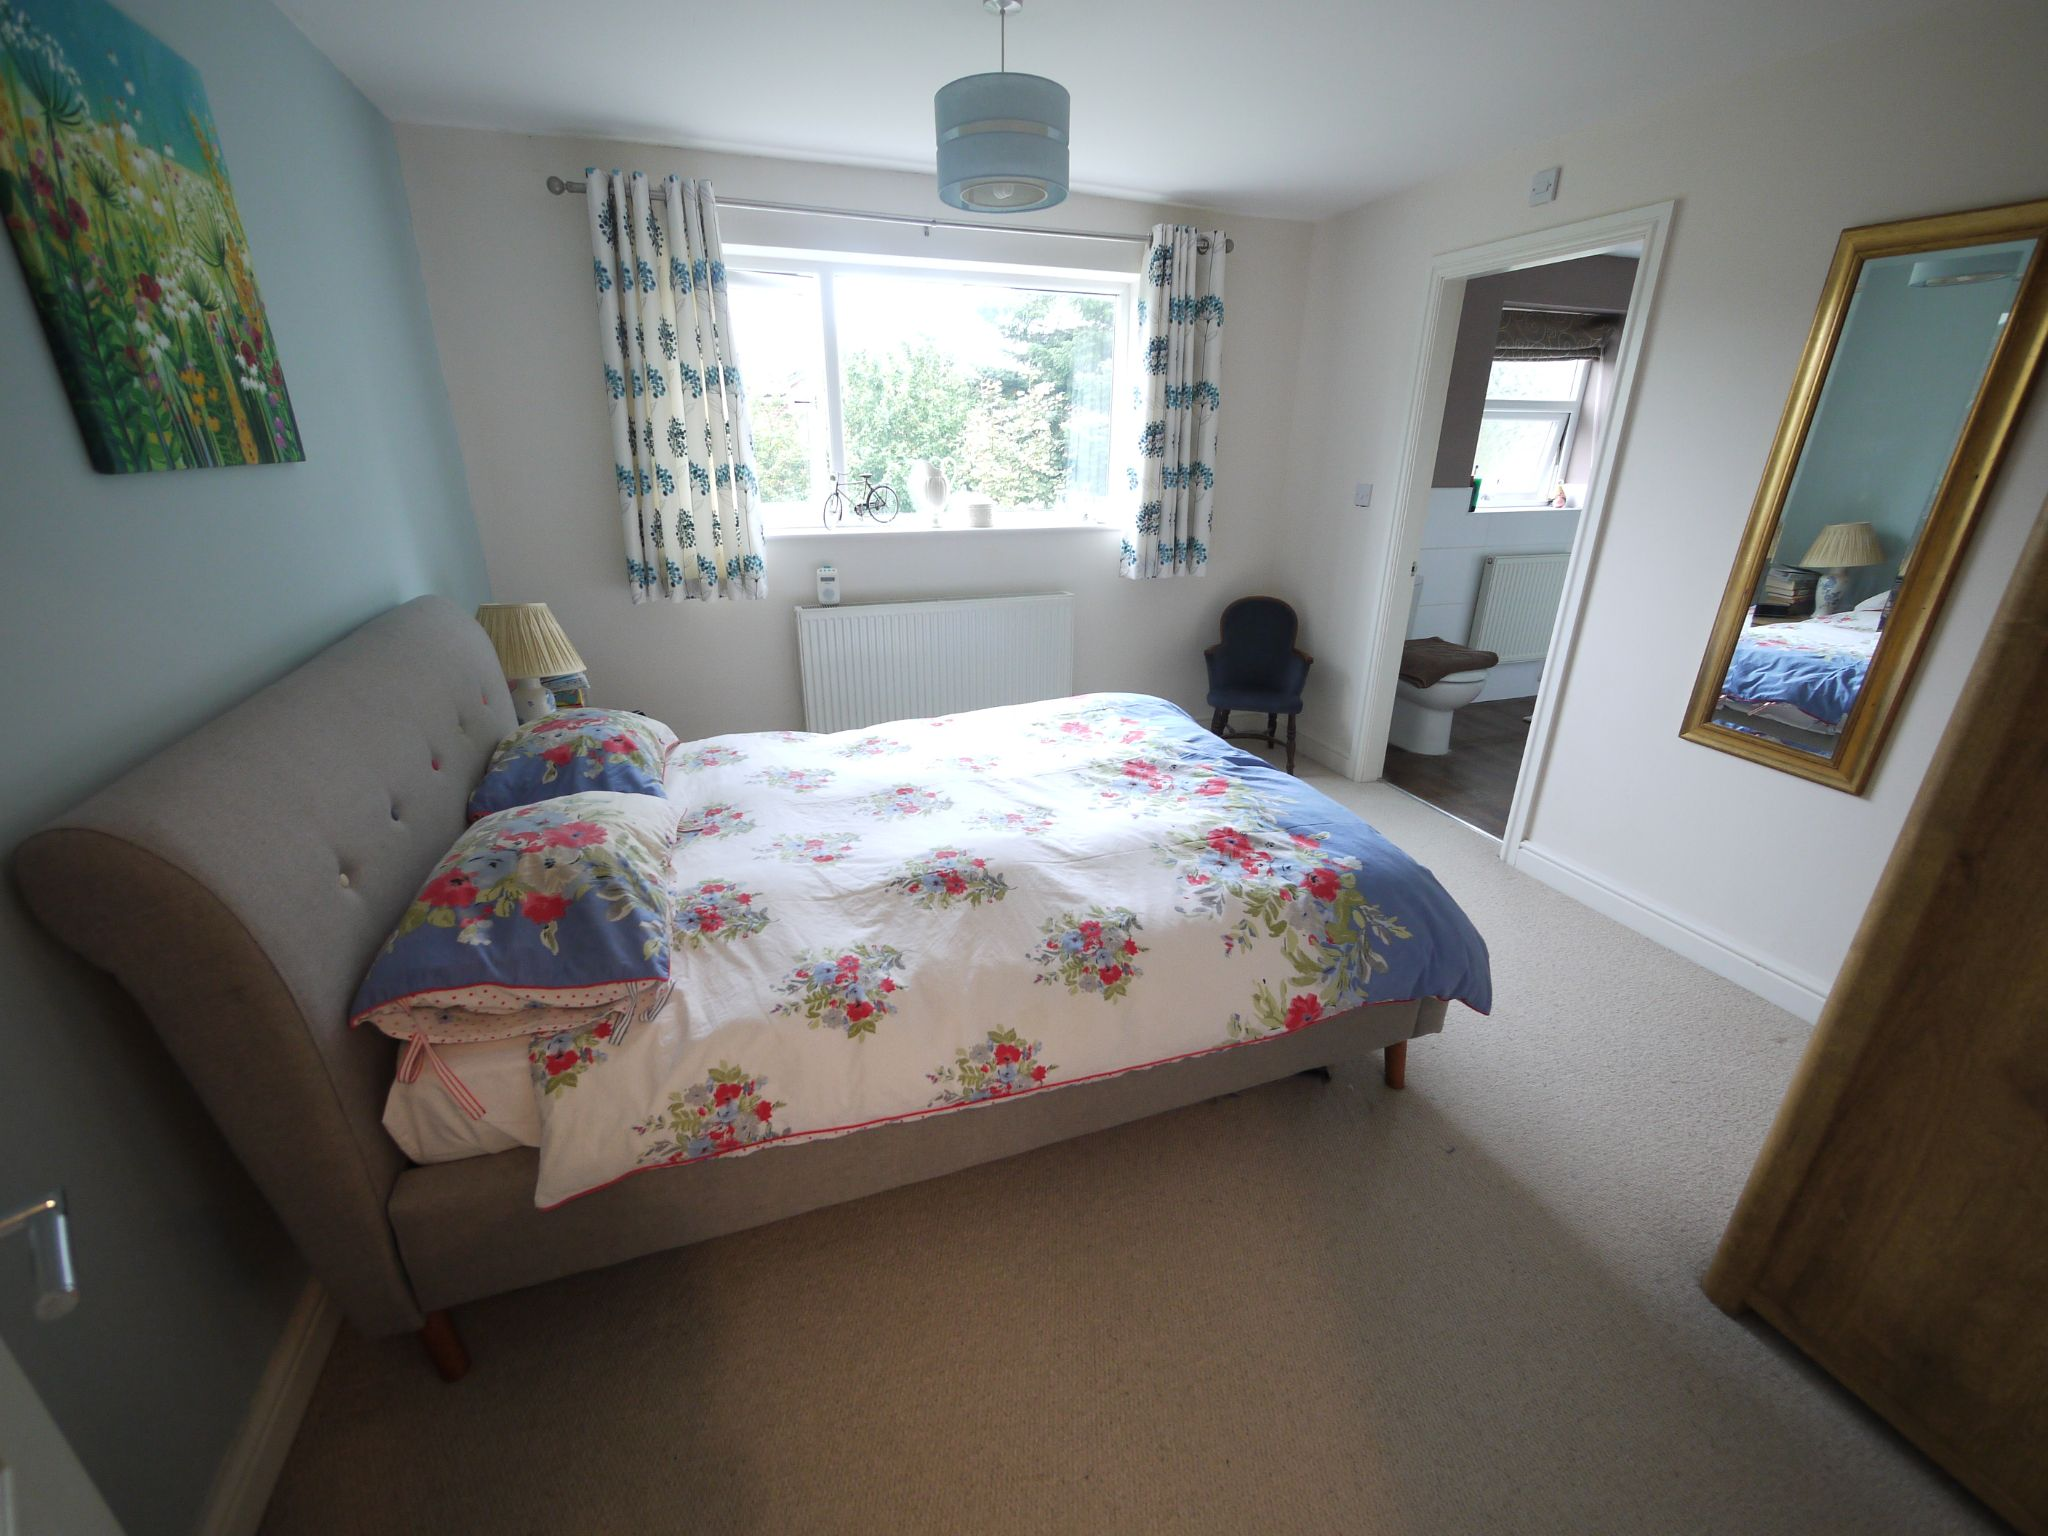 6 bedroom detached house SSTC in Halifax - bed 2.